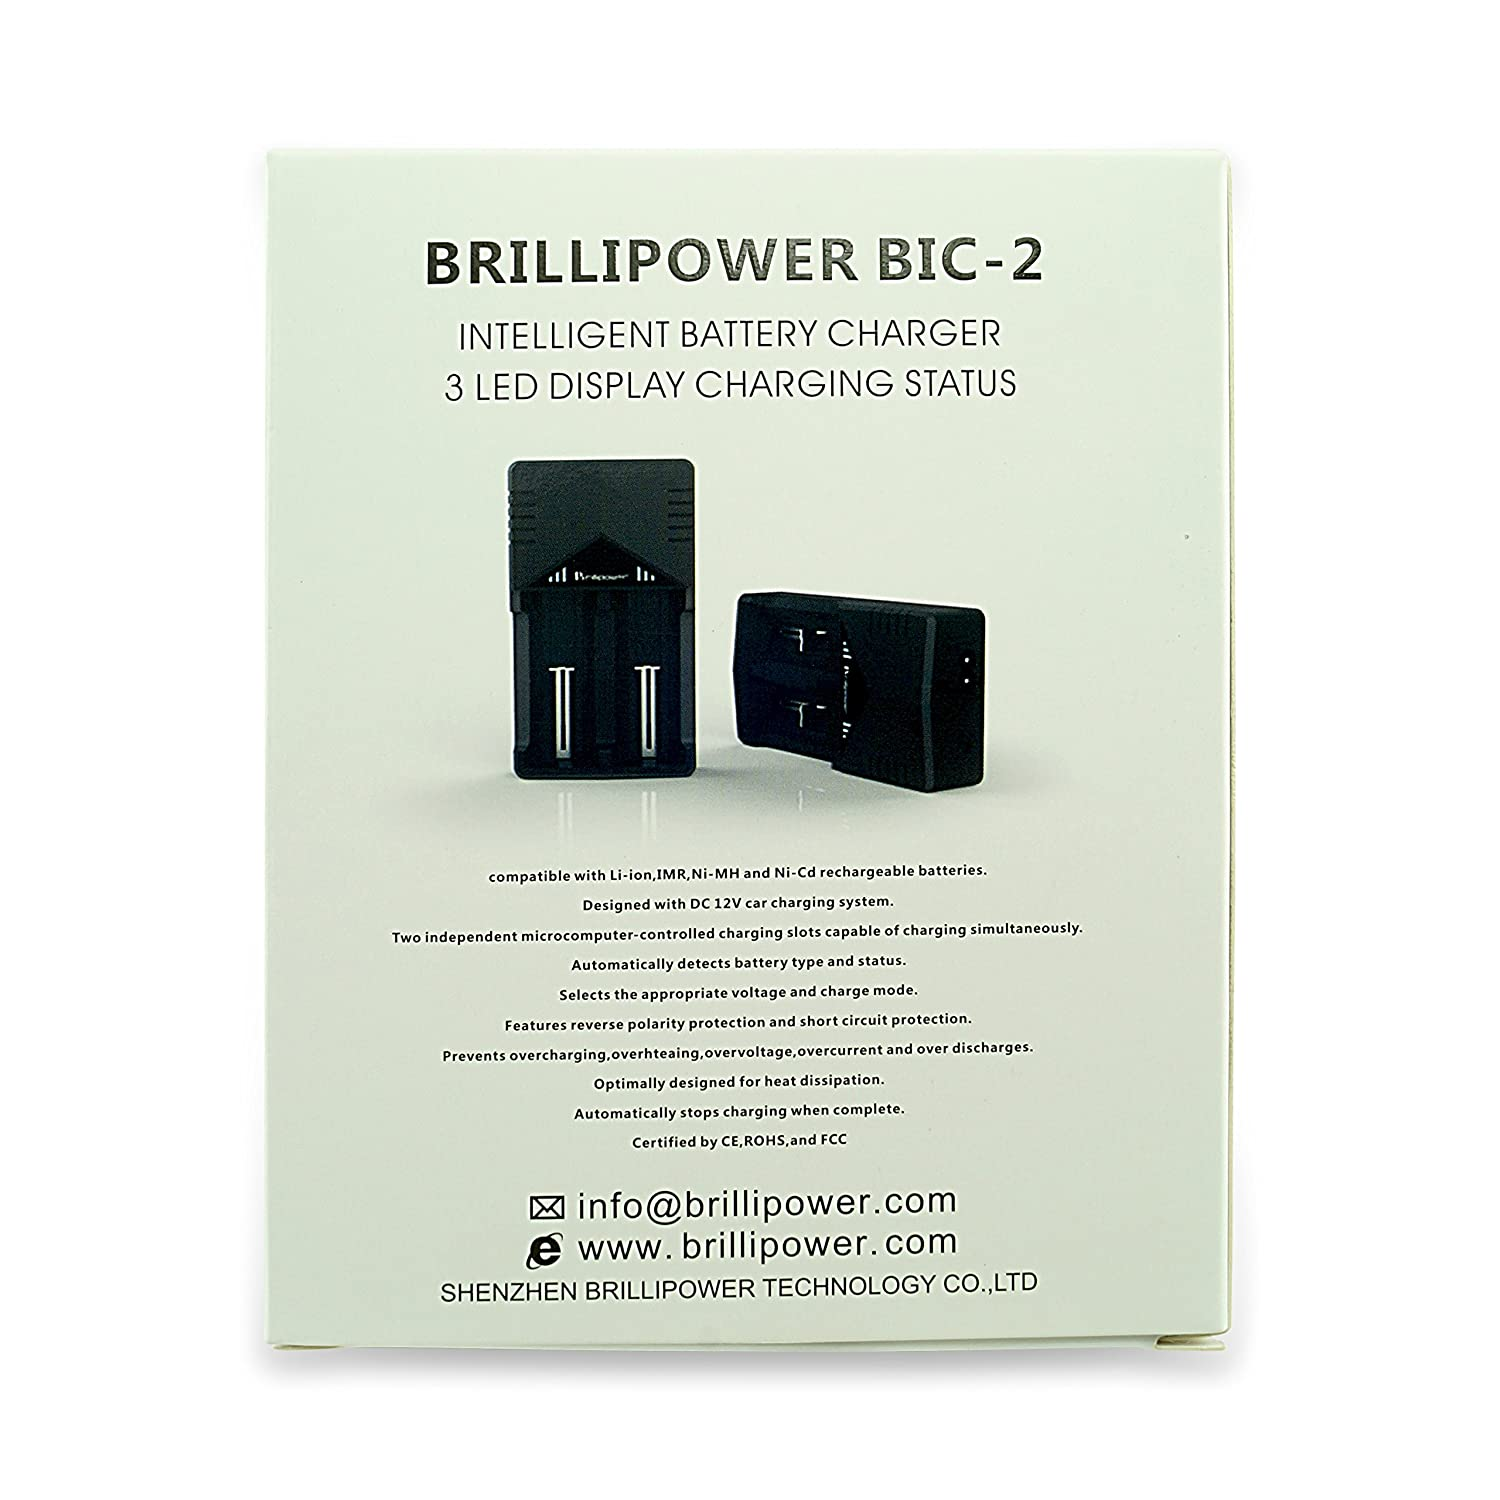 Brillipower Bic2 Universal Fast Dual Battery Charger Automatic Nicd Circuit Li Ion Ni Mh Cd Home Audio Theater